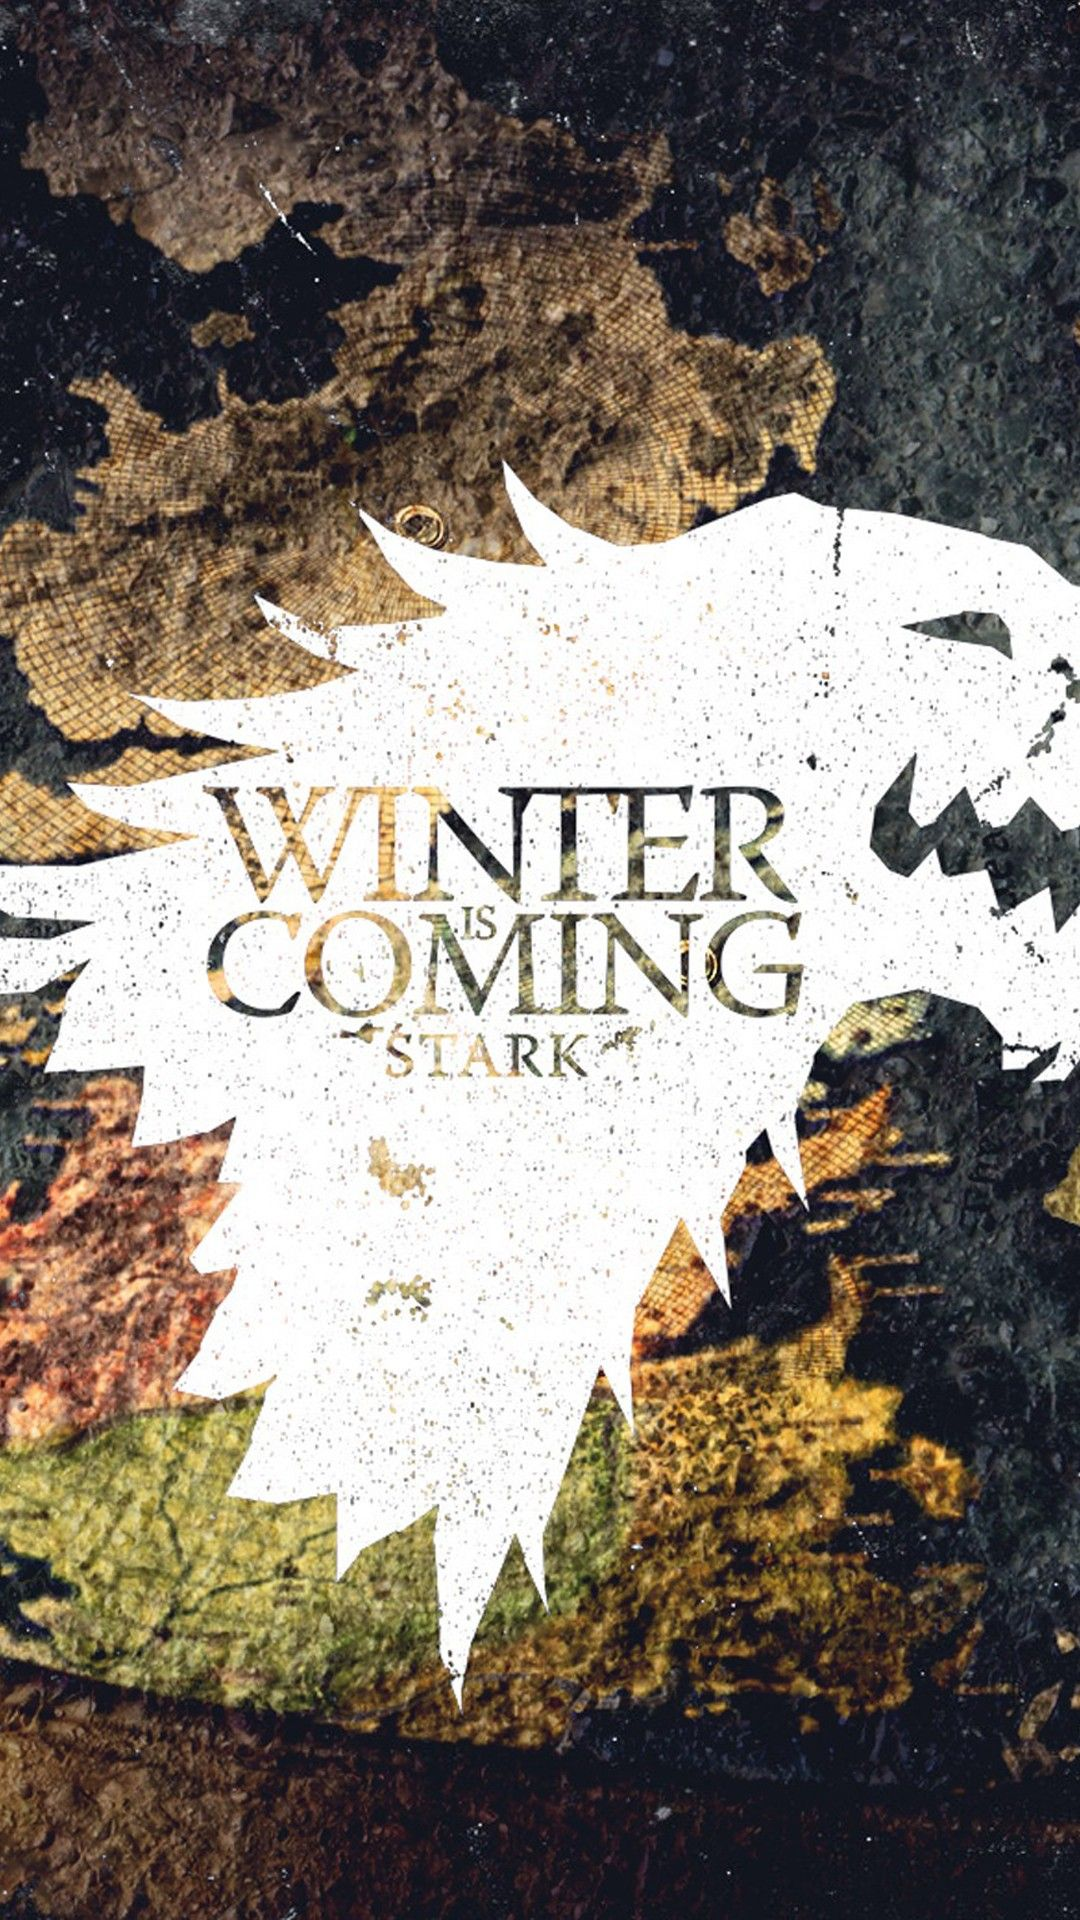 Winter Is Coming Game Of Thrones Stark Smartphone Wallpaper And Lockscreen Hd Check More Winter Is Coming Wallpaper Android Wallpaper Android Wallpaper Winter